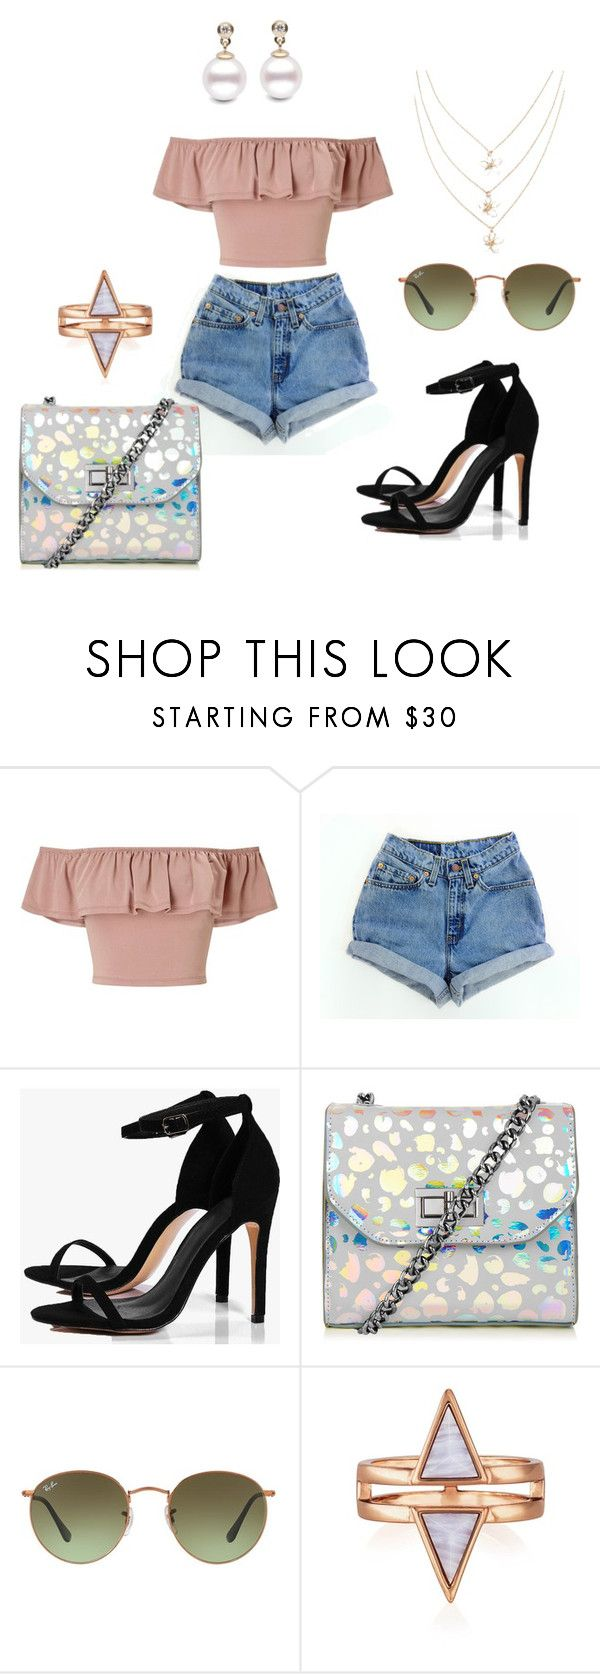 """""""simple"""" by anaily on Polyvore featuring moda, Miss Selfridge, Levi's, Boohoo, Ray-Ban e rayban"""